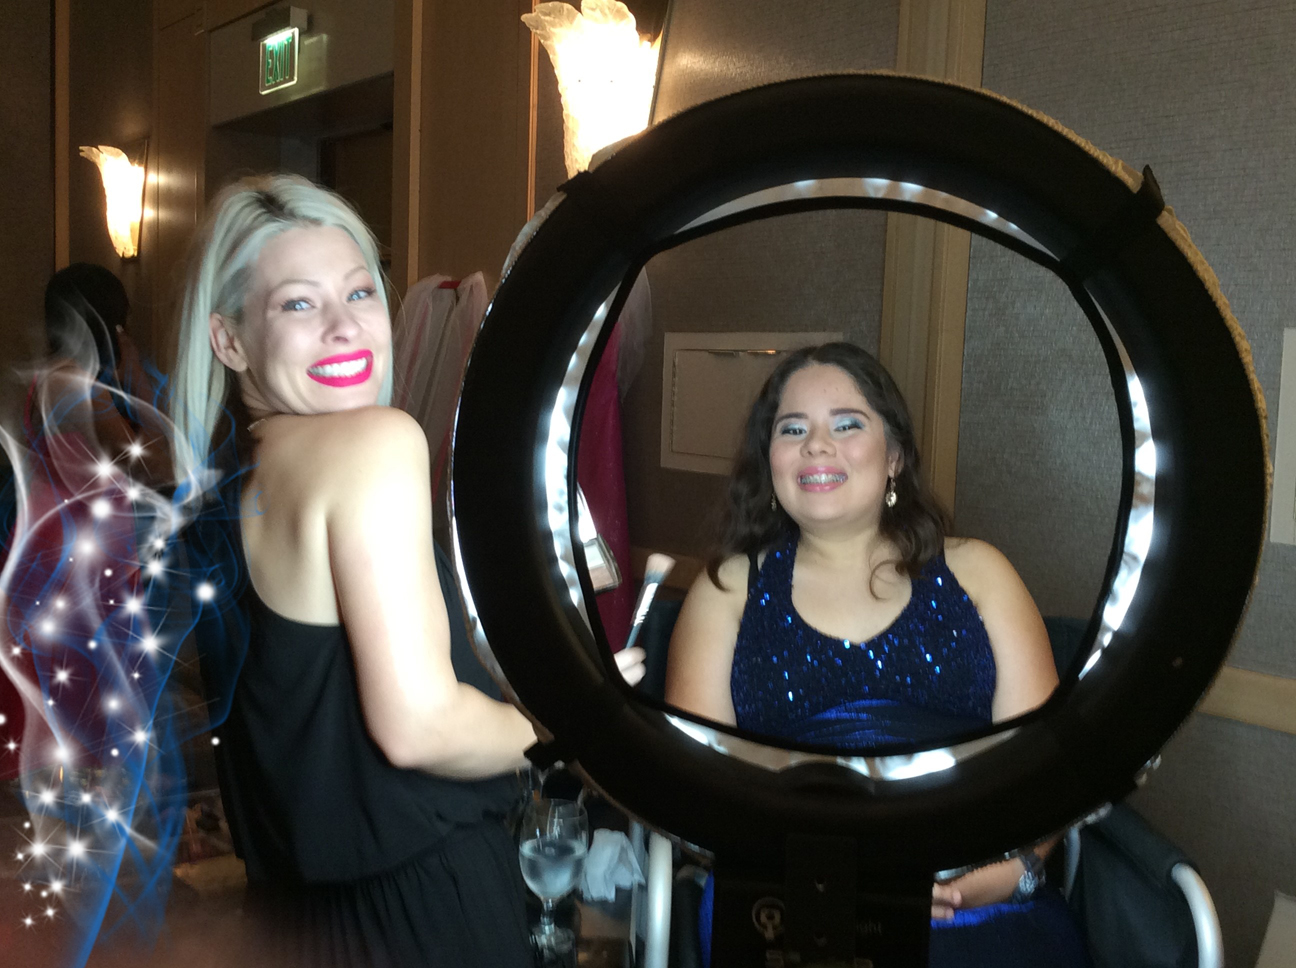 Renal teen prom - make up